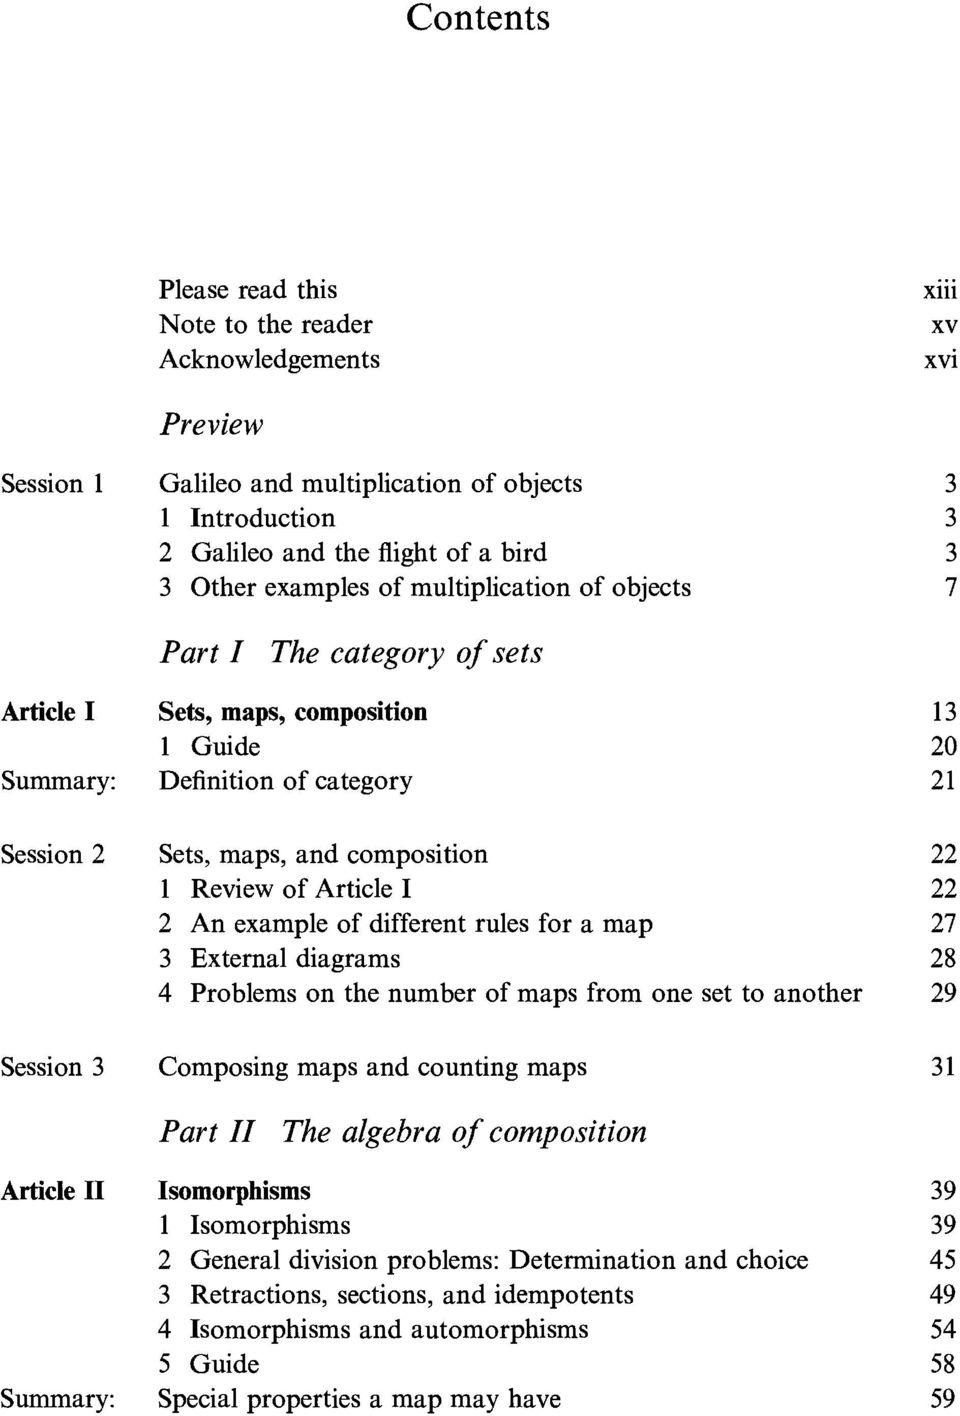 Review of Article I 22 2 An example of different rules for a map 27 3 External diagrams 28 4 Problems on the number of maps from one set to another 29 Session 3 Composing maps and counting maps 31